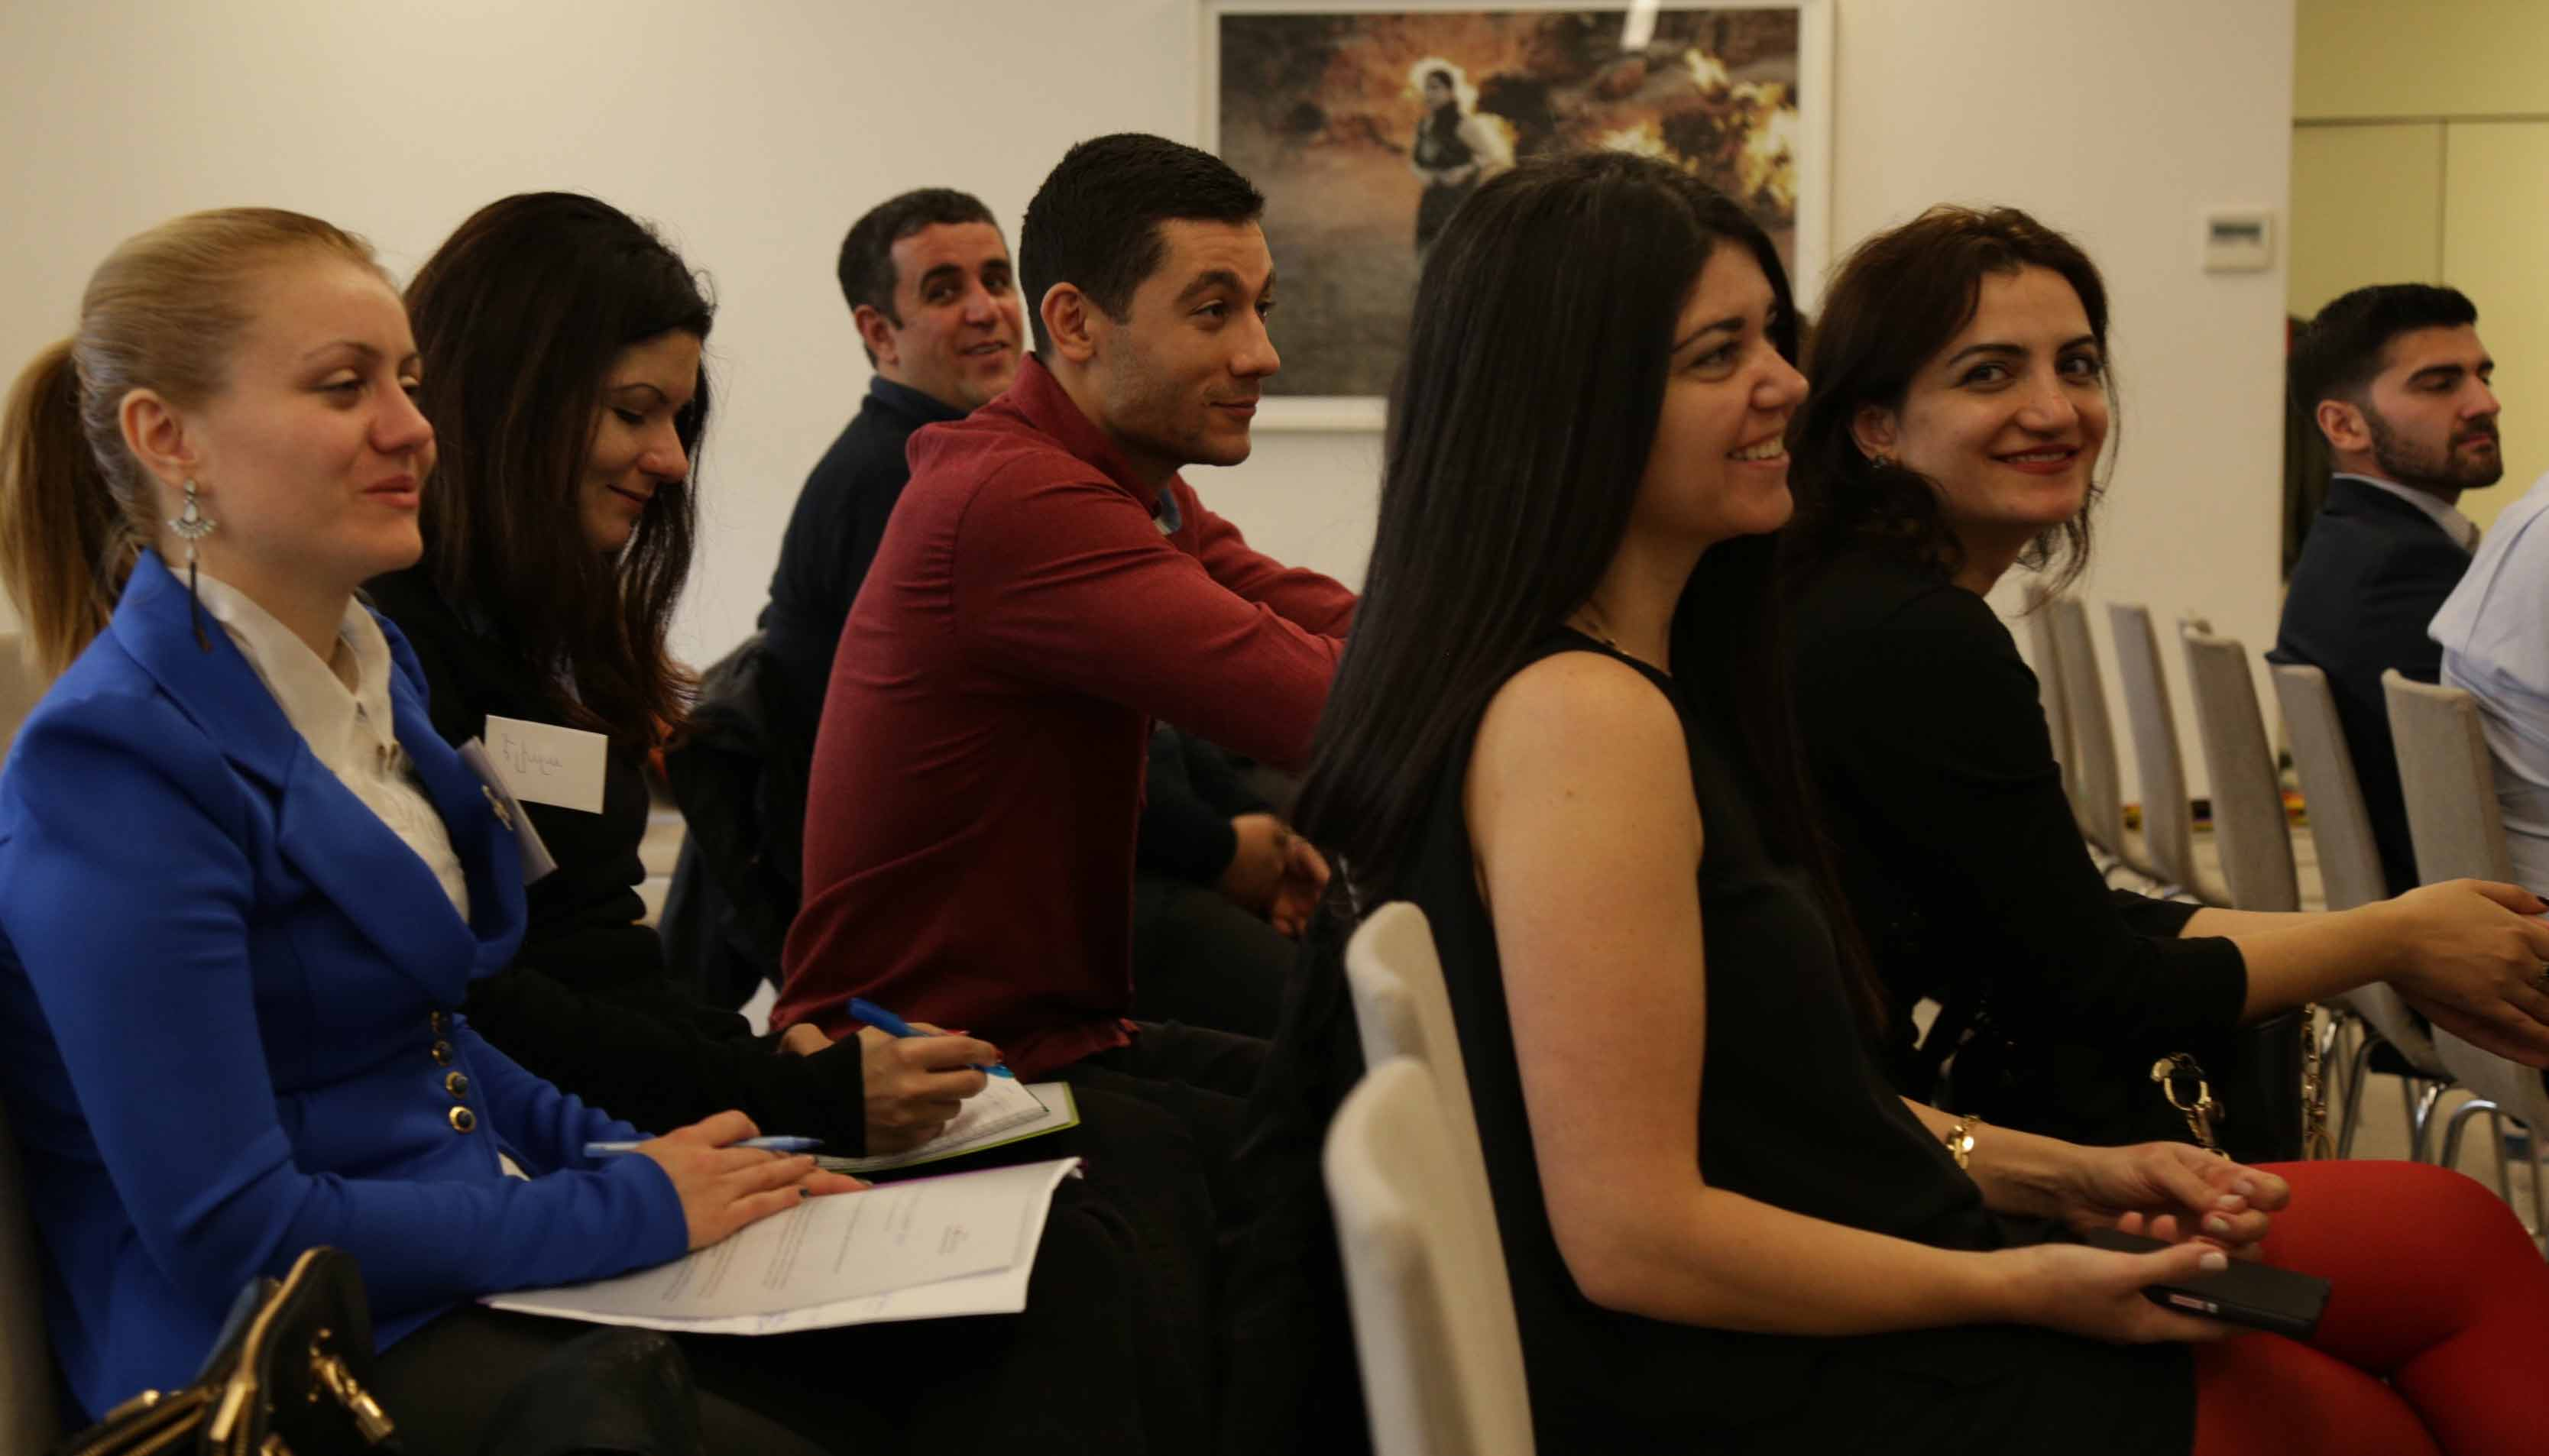 AGBU Young professionals of Europe gather in Paris for their 3rd bi-annual Summit